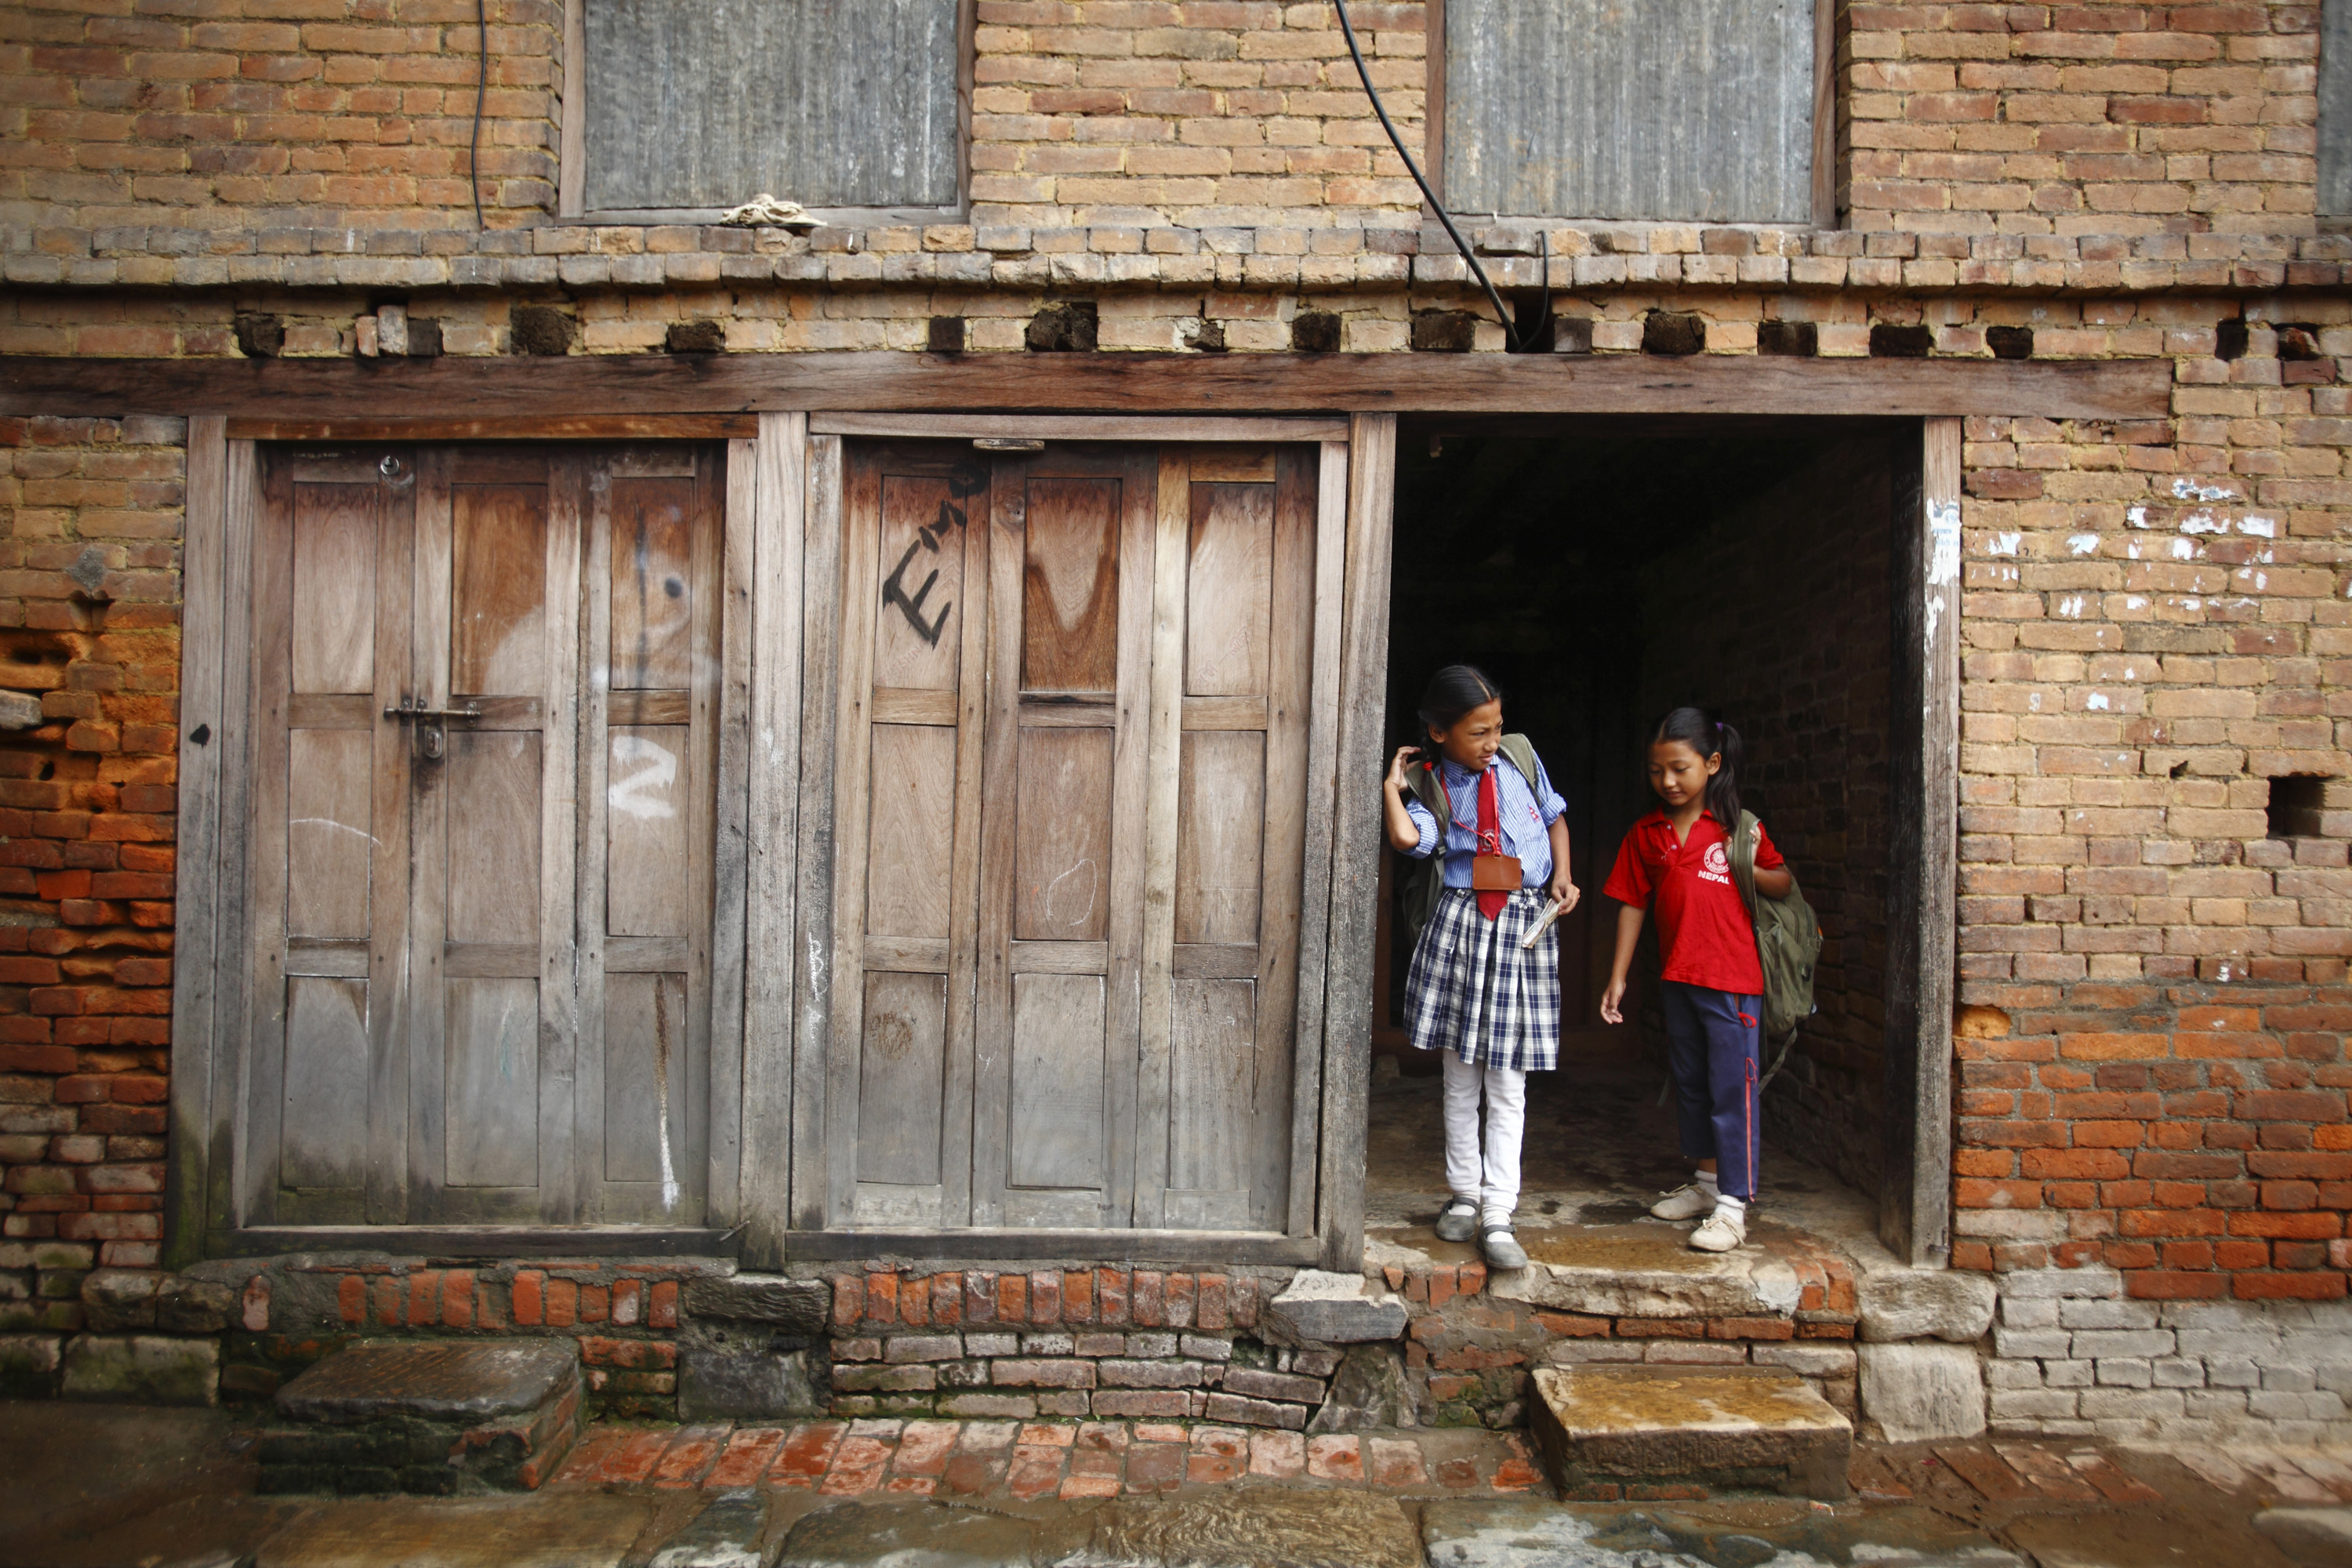 Children walk out from their home as they head towards their school in the ancient city of Bhaktapur, Nepal September 13, 2012. REUTERS/Navesh Chitrakar (NEPAL - Tags: SOCIETY TPX IMAGES OF THE DAY) - RTR37WVH